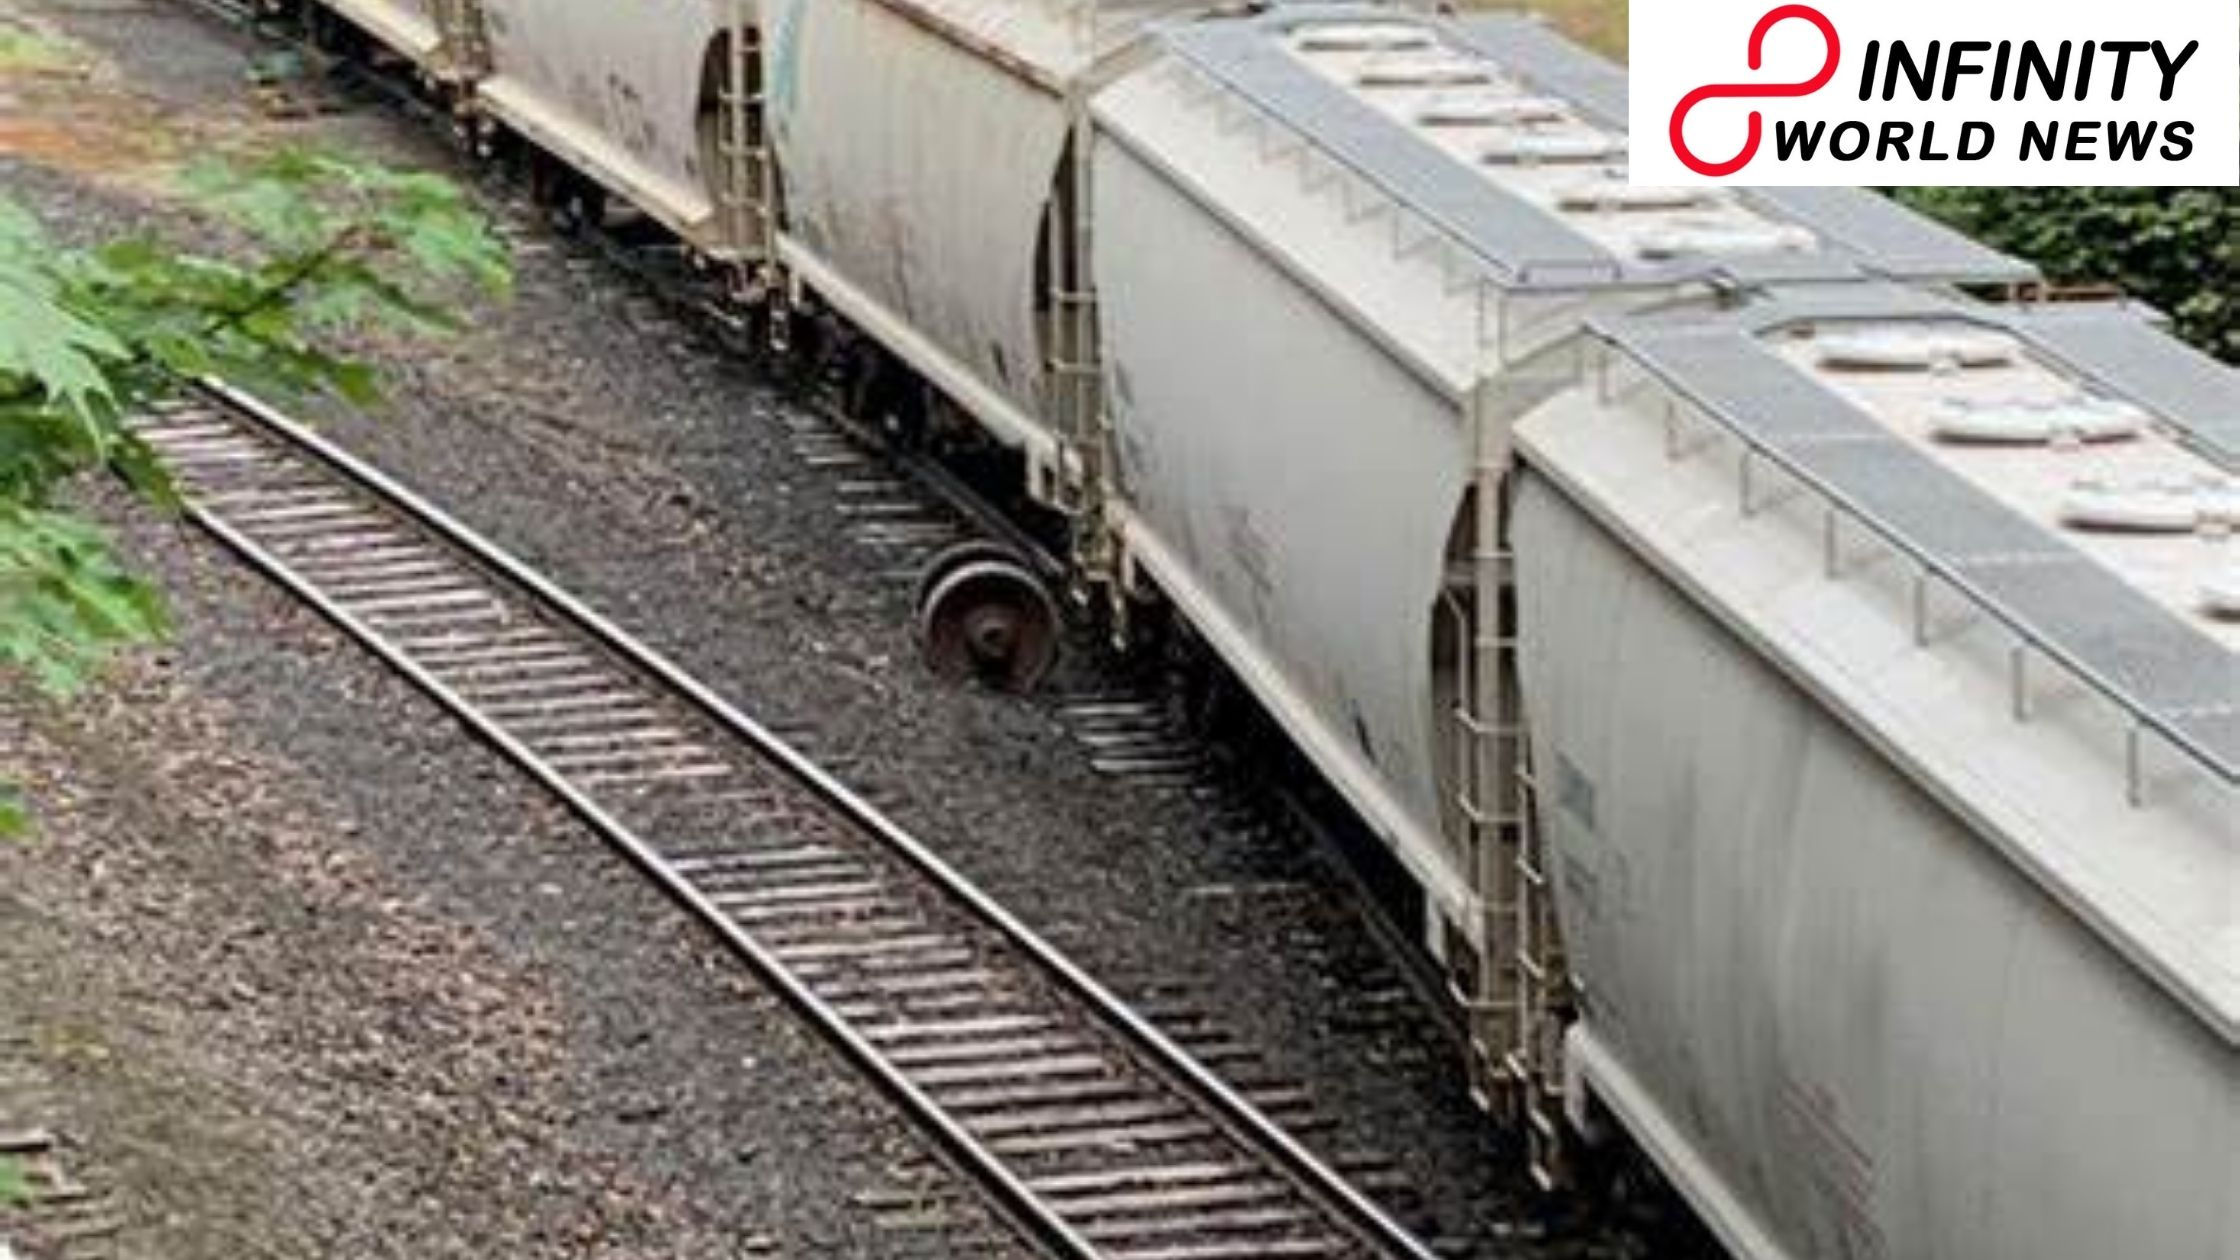 Teen Killed By Train Within Pakistan While Shooting a TikTok Video on Tracks